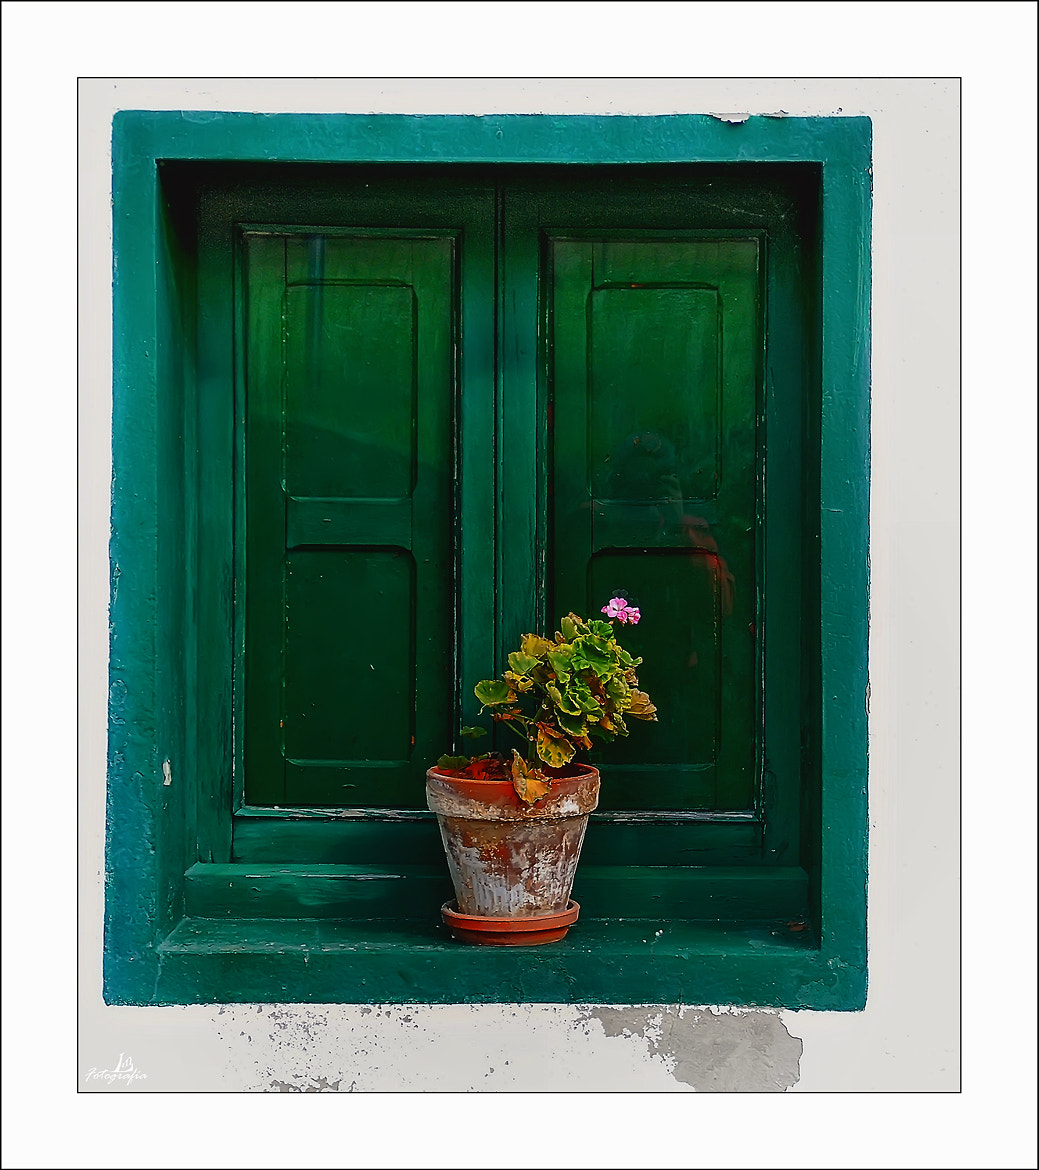 Photograph Windows and balconies VII (The Geranium) by Manuel Lancha on 500px